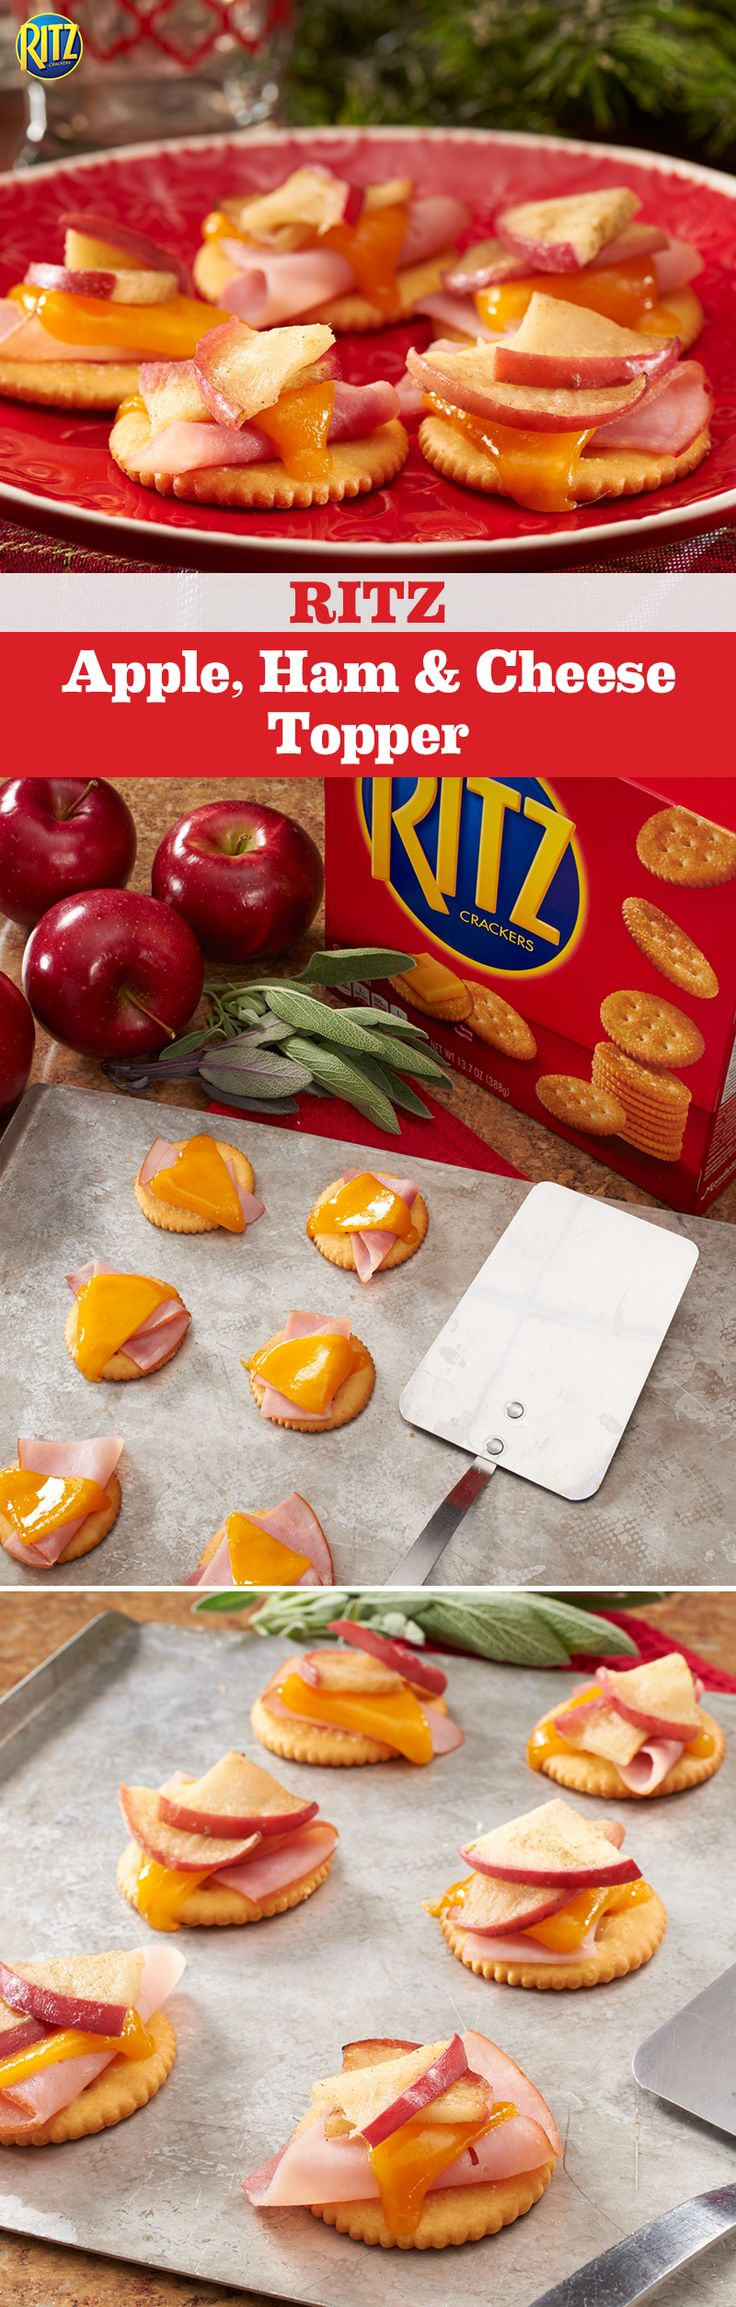 Enjoy apple season over the holidays with our RITZ Apple, Ham & Cheese Bites. Place ham, melted cheddar cheese and a buttery apple topping on a RITZ and you'll have the perfect combination of sweet and savory.